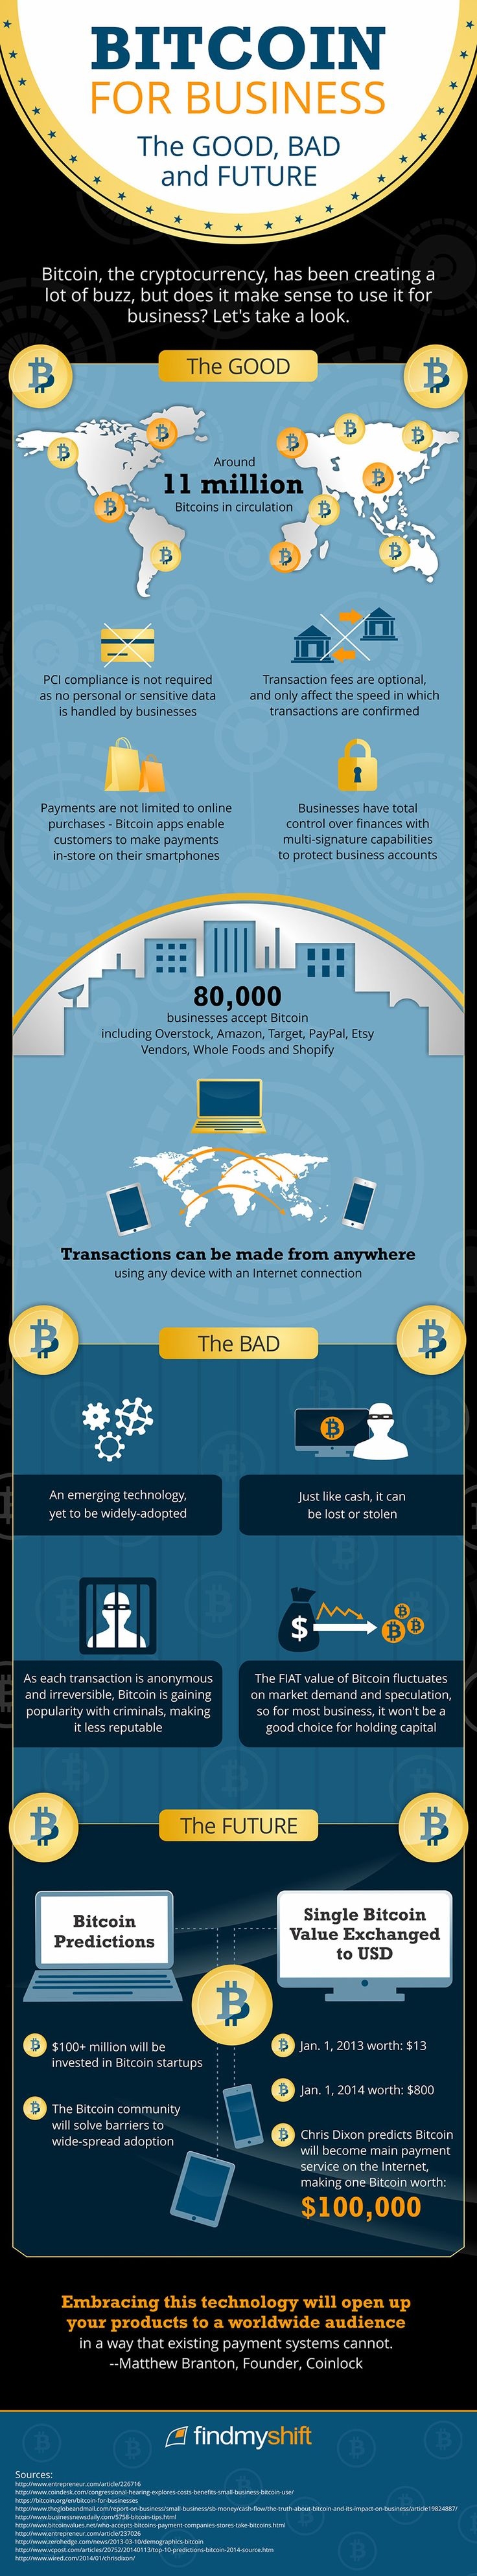 bitcoin-infographic-the-good-the-bad-and-the-future